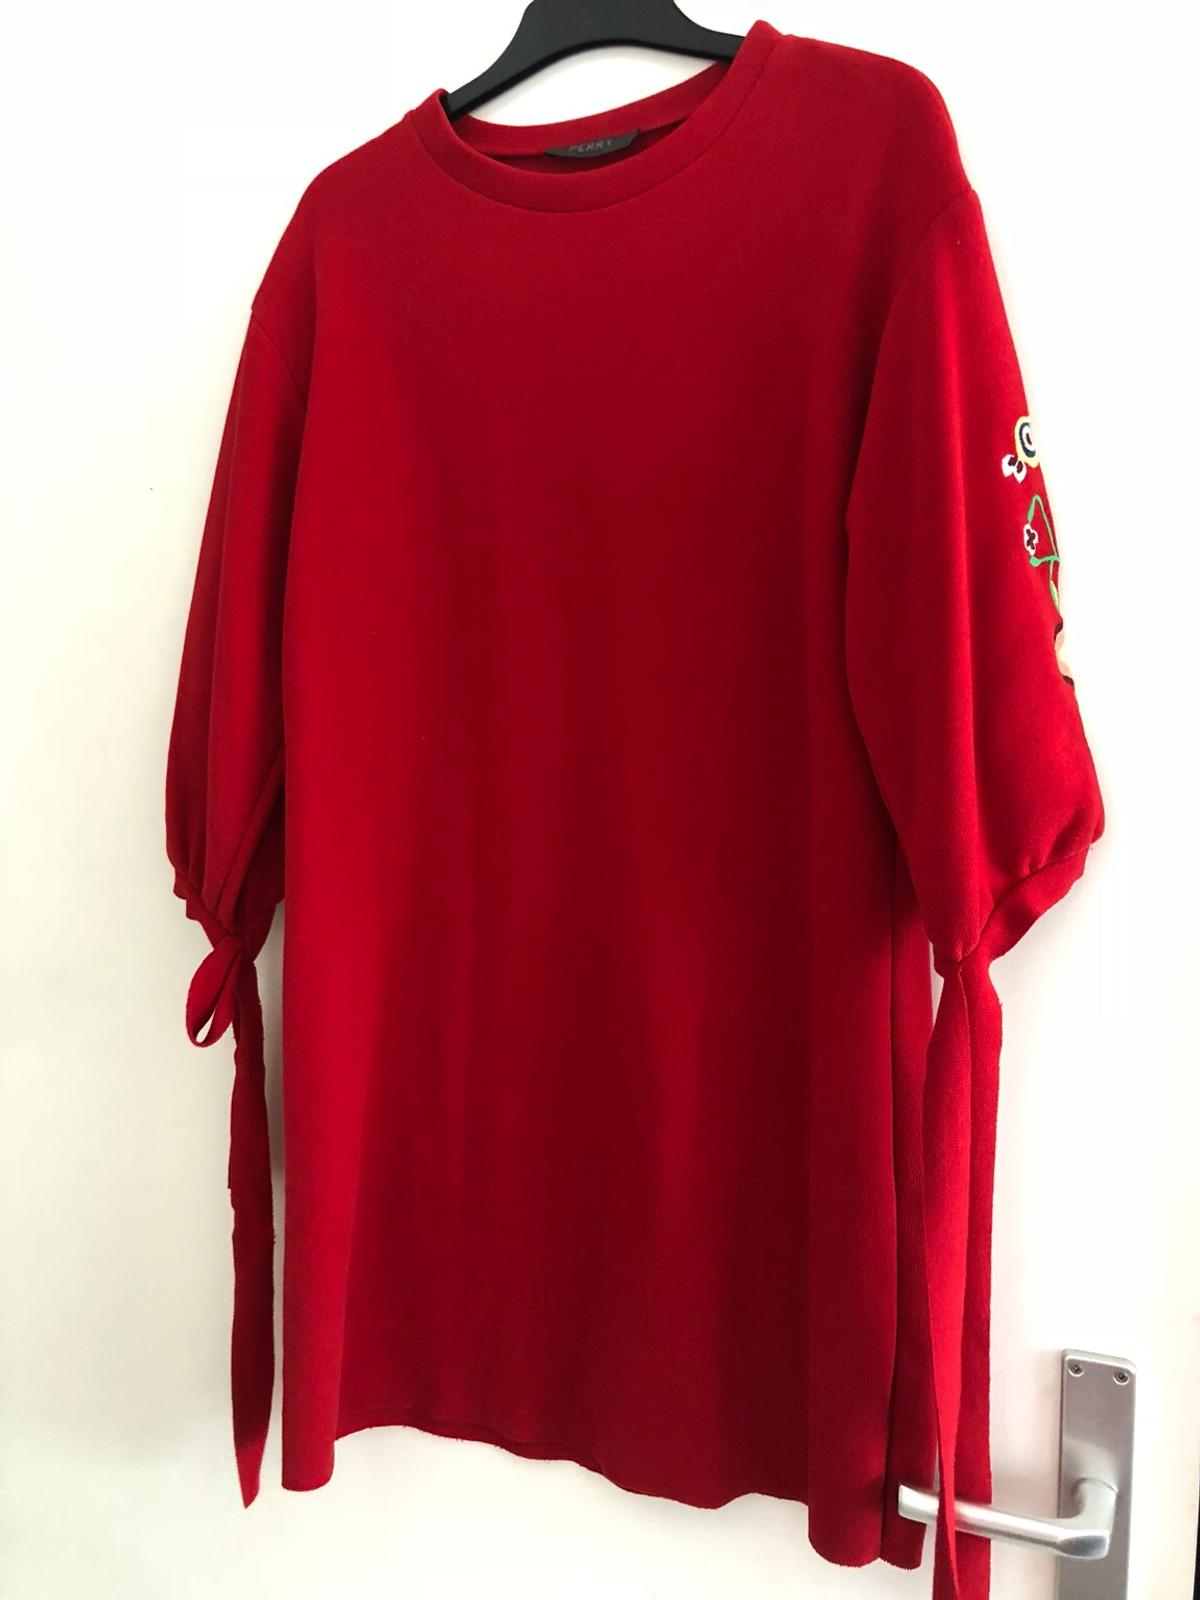 huge selection of 126b0 136c9 Pullover